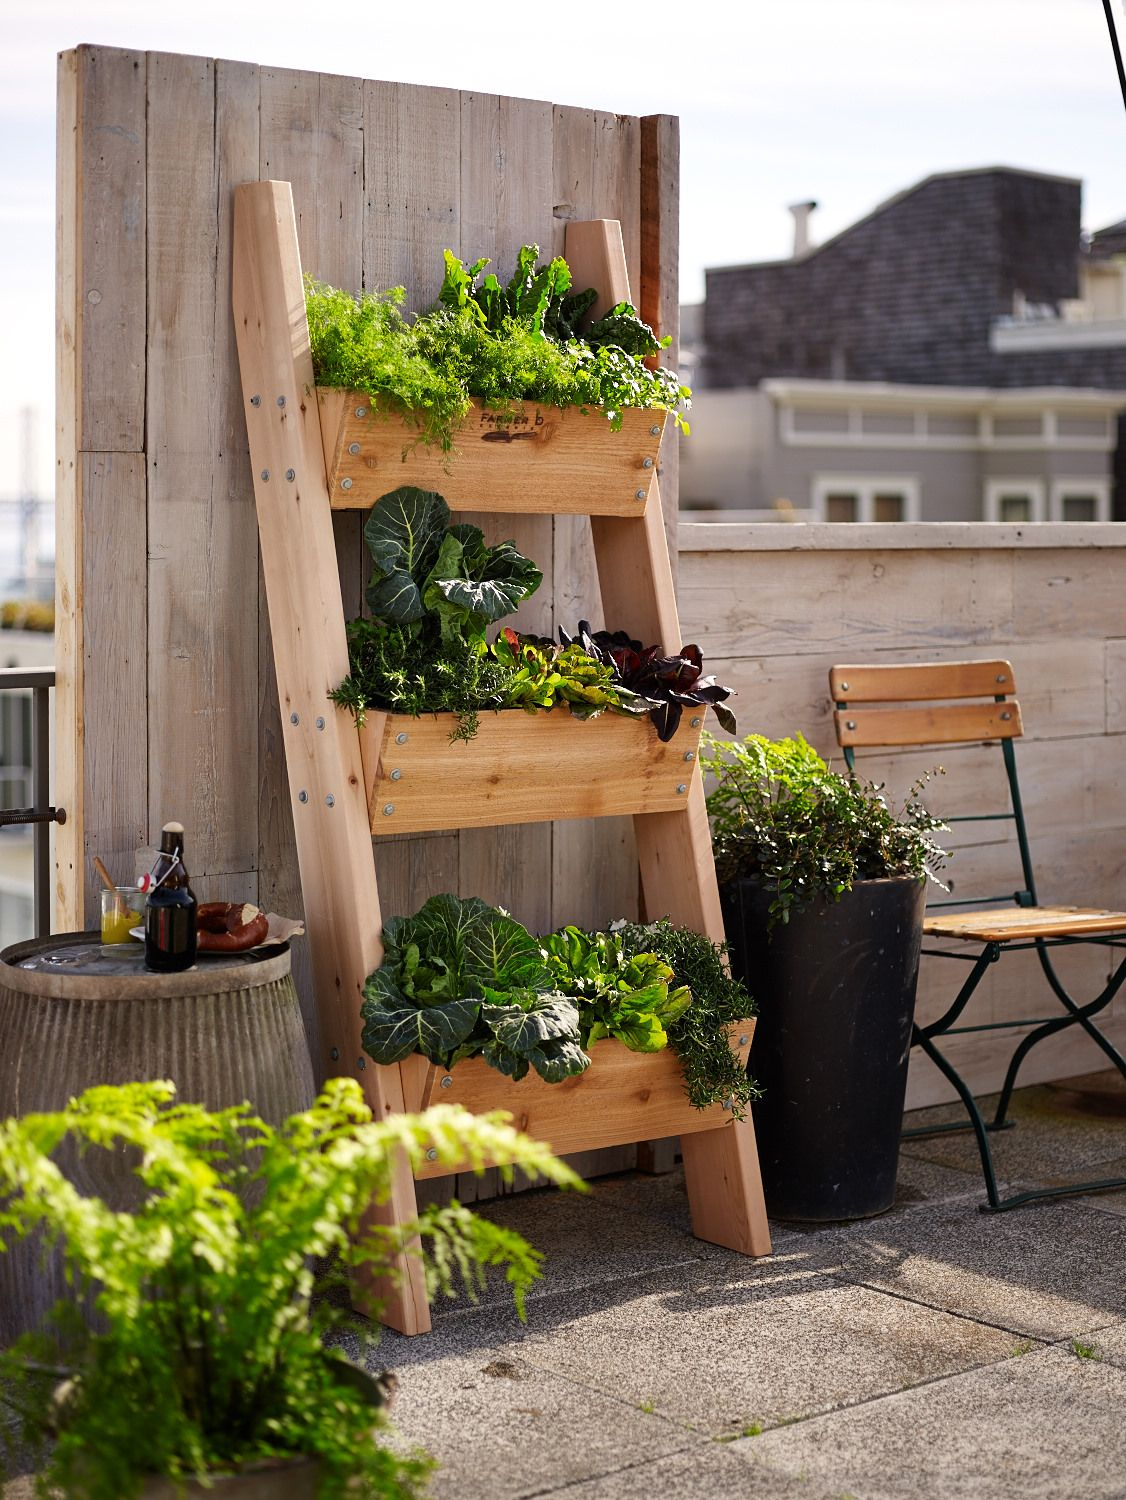 Grow Herbs And Vegetables In Compact Outdoor